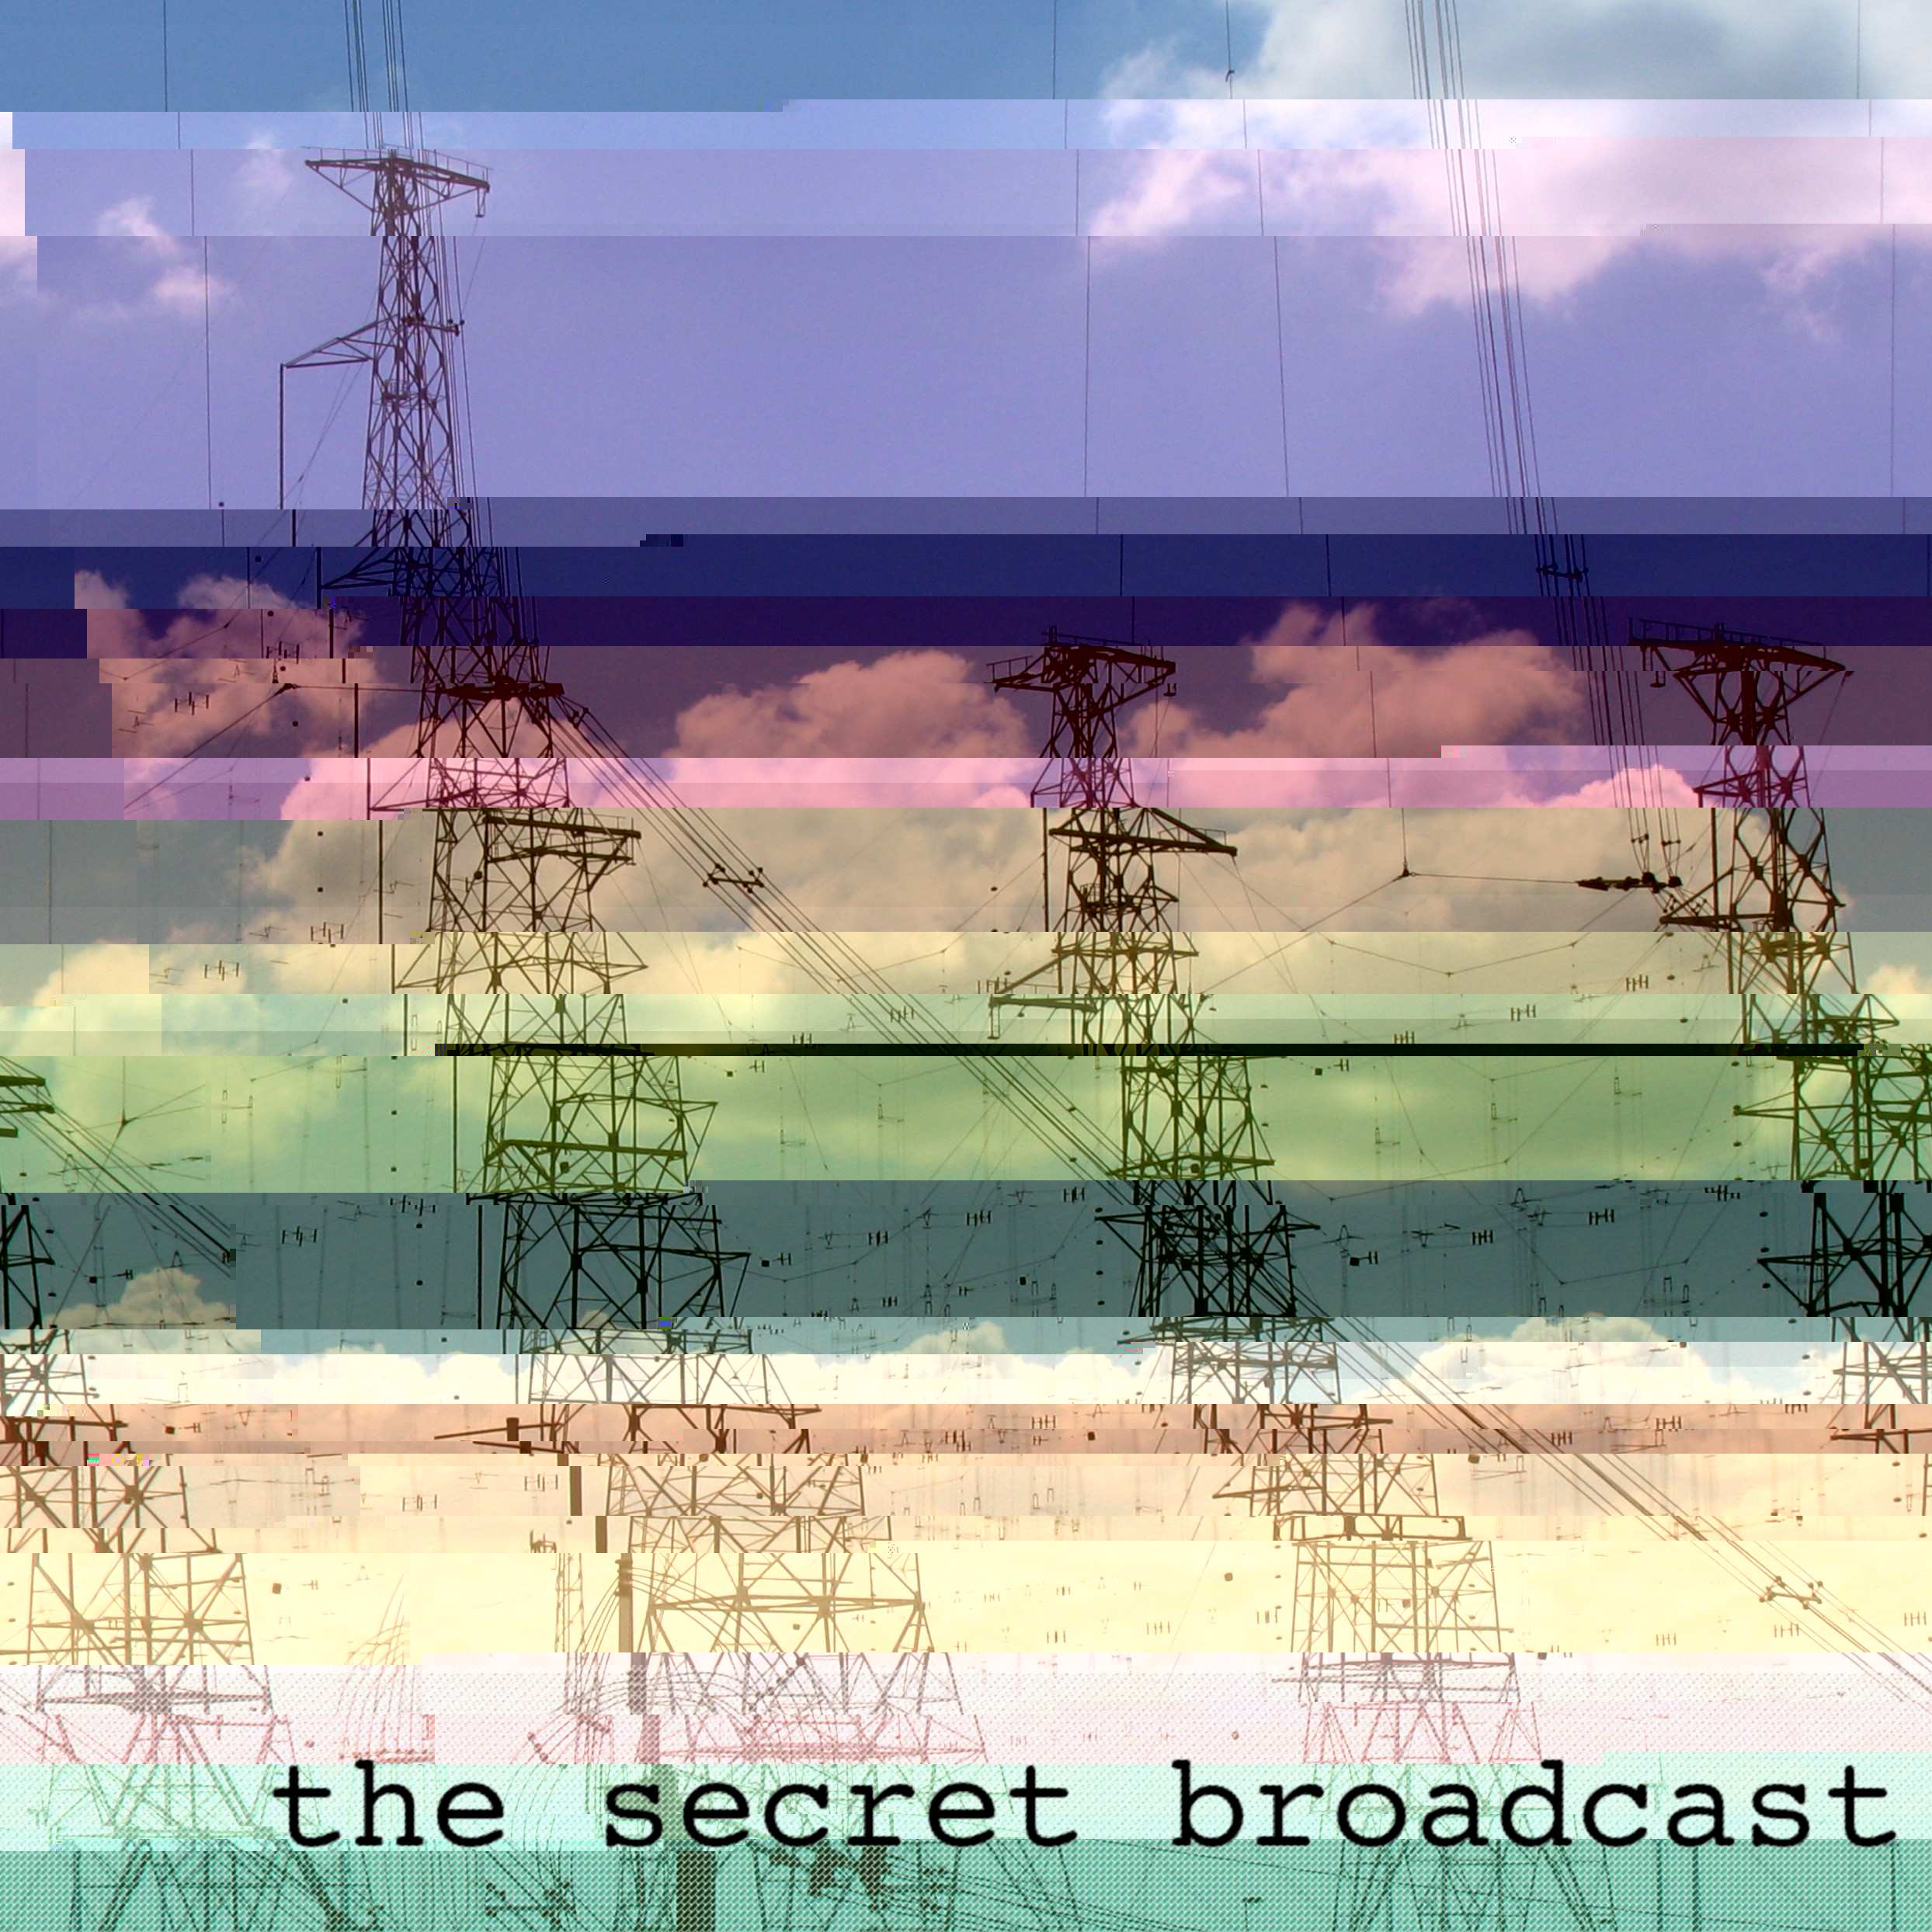 A glitched view of a shortwave transmitter